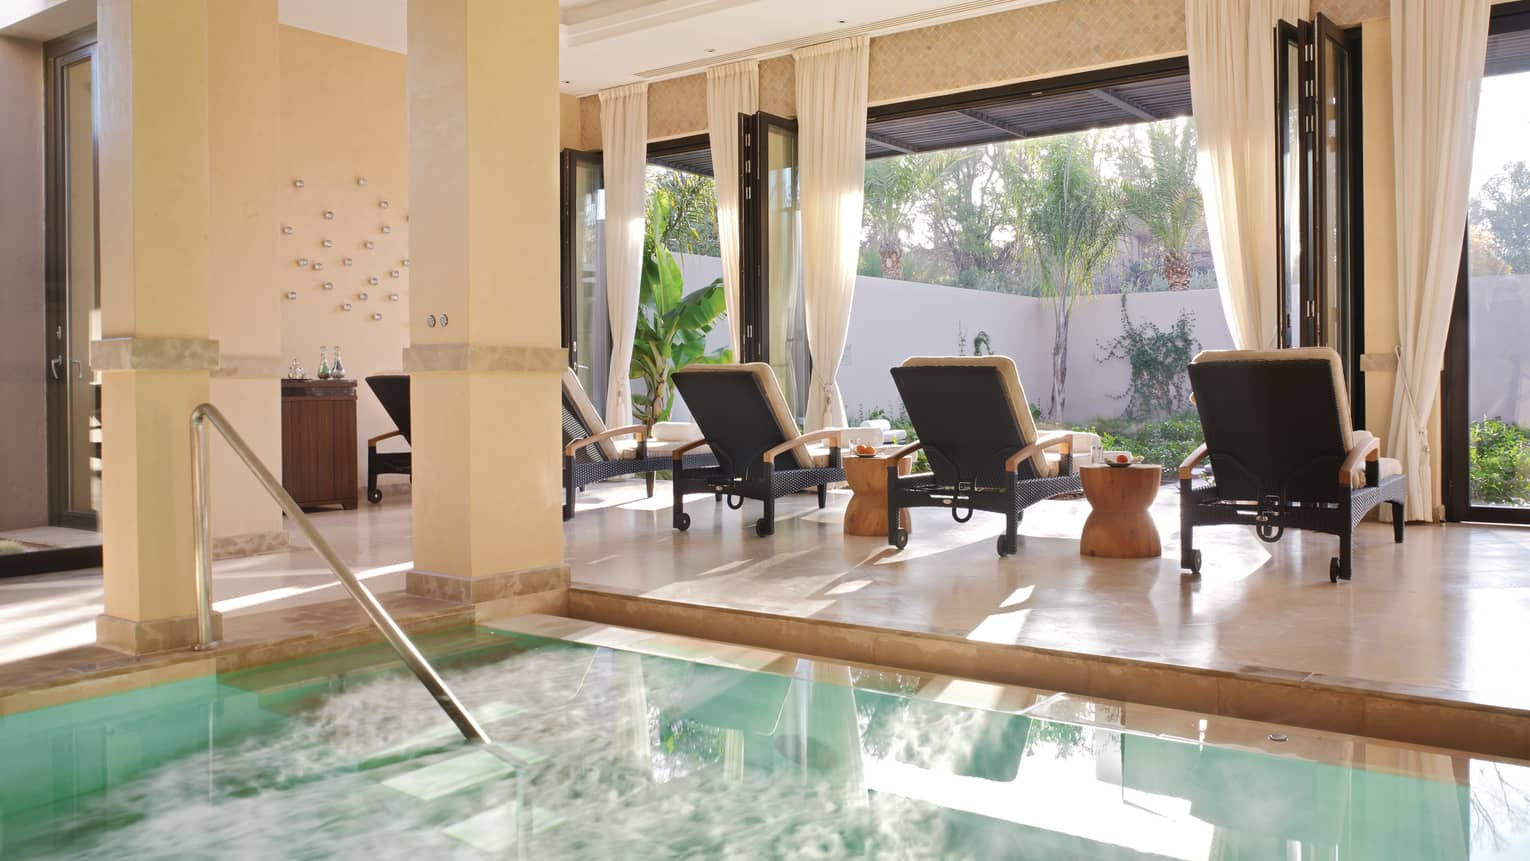 Three lounge chairs at sunny window by steps to Spa plunge pool